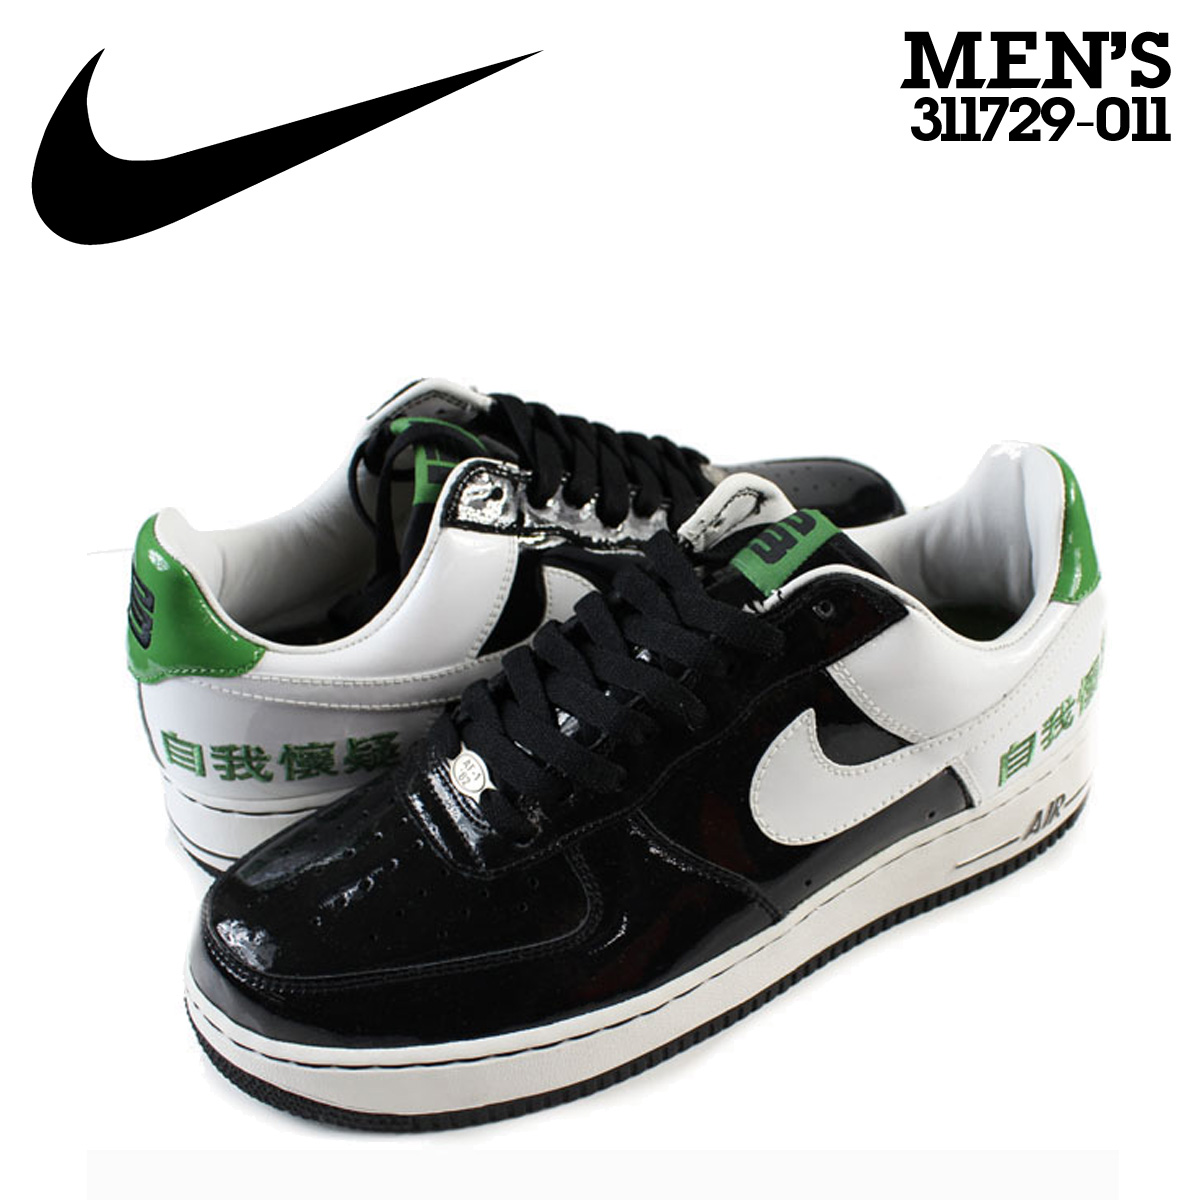 55761e35b4343 Nike NIKE air force sneakers AIR FORCE 1 LOW LEBRON JAMES CHAMBER OF FEAR air  force LeBron James ego skepticism 311729-011 black mens